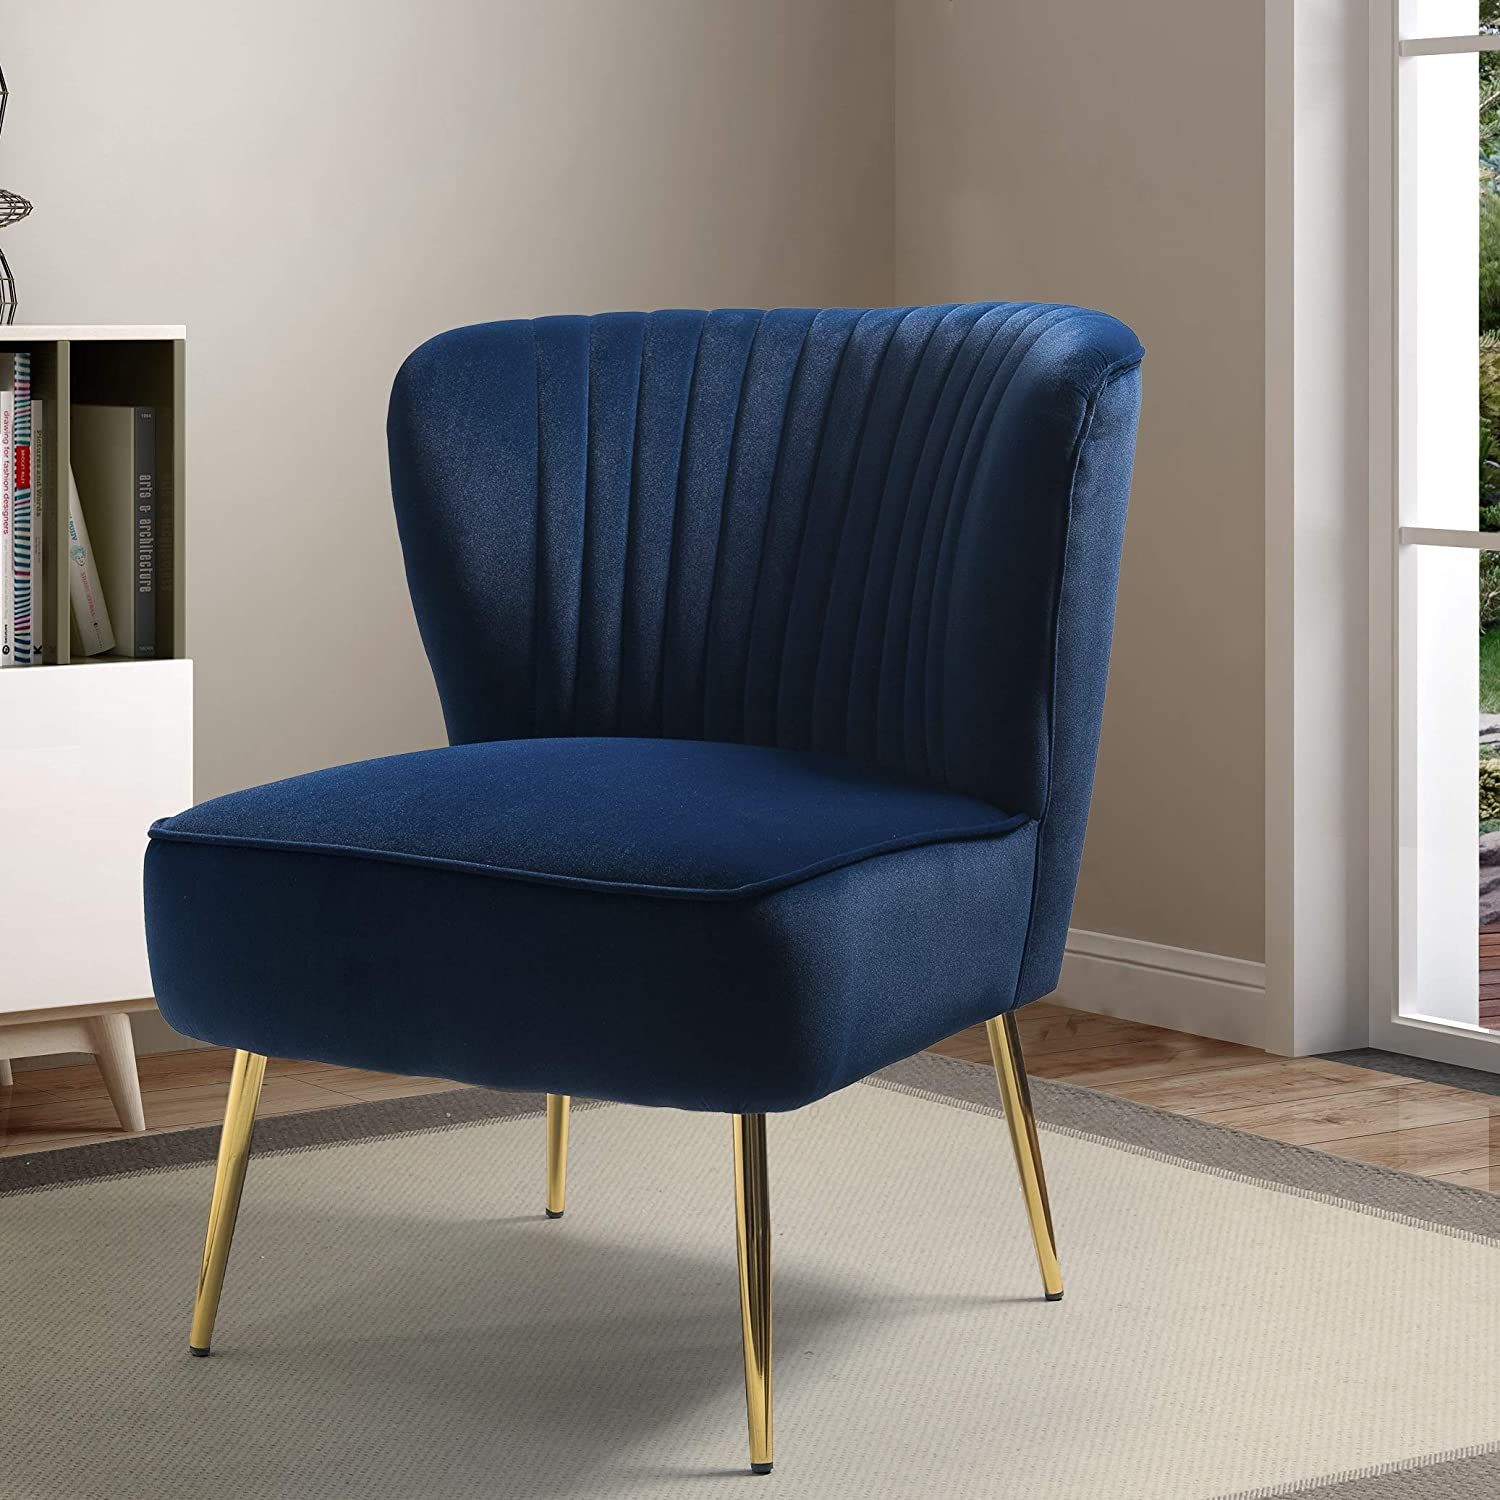 Modern Glam Velvet Armless Chair with Gold Metal Legs for Bedroom Chairs -  Navy Blue